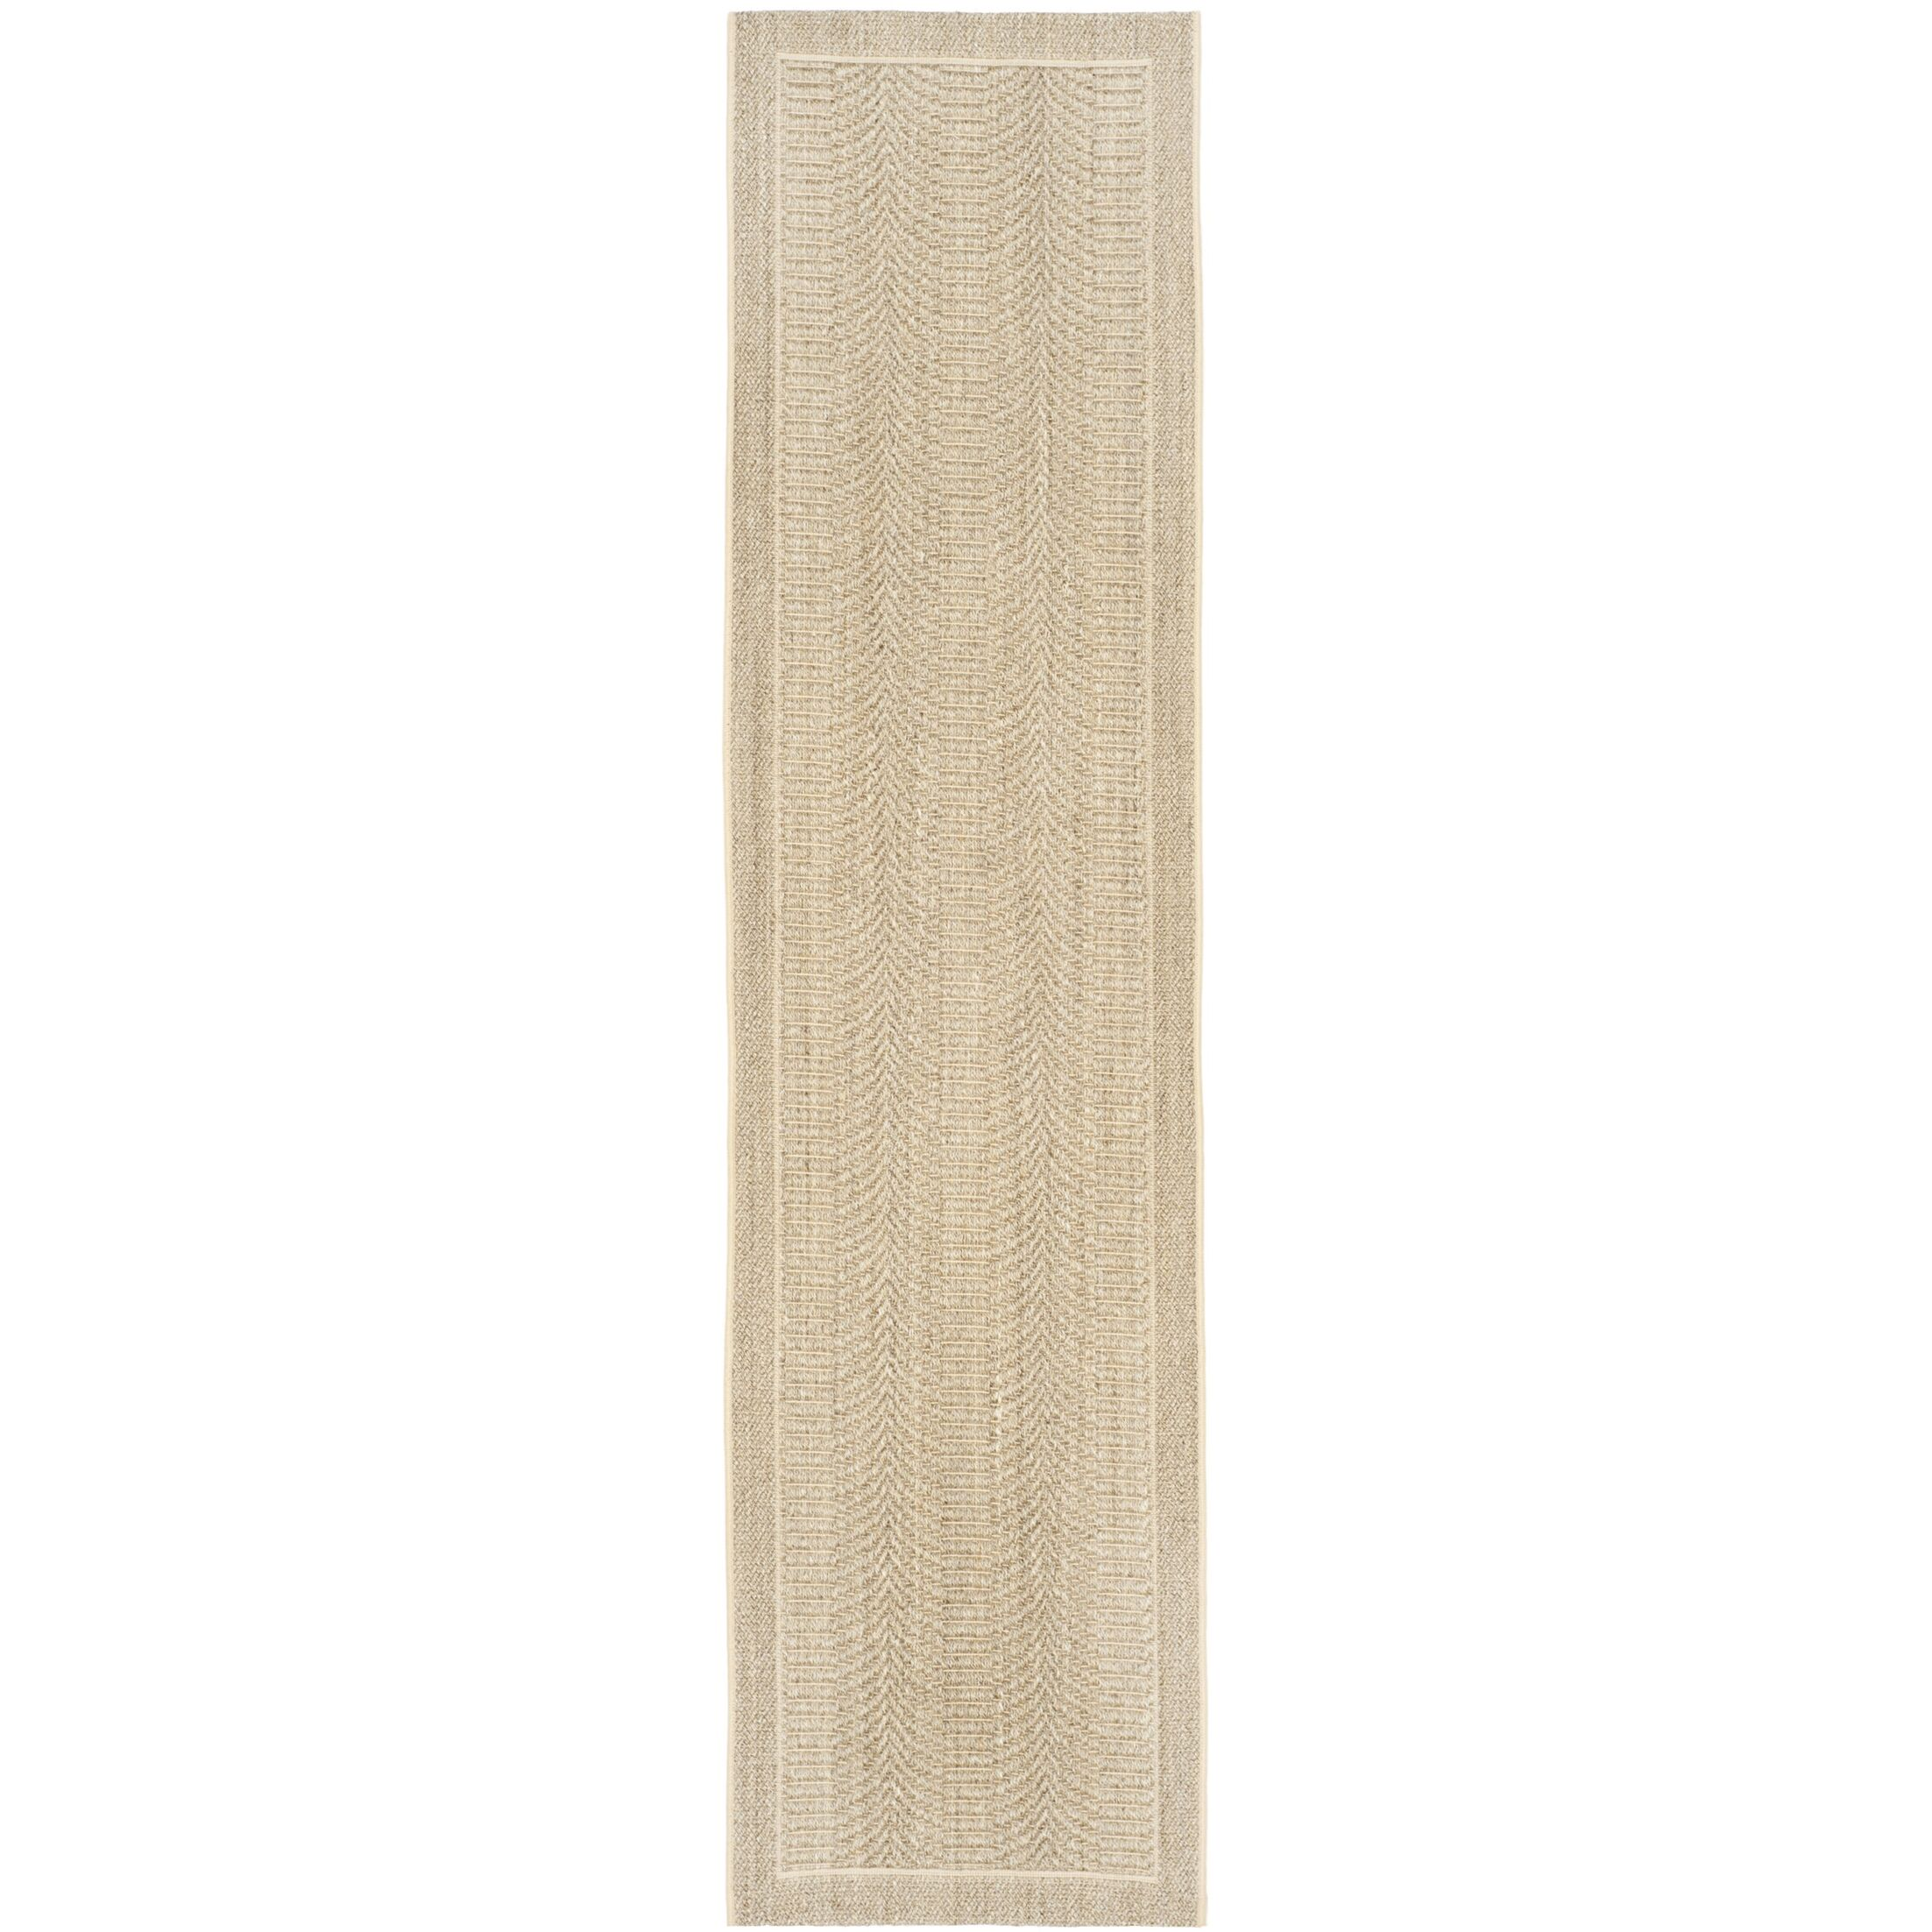 Rodanthe Desert Sand Solid Area Rug Rug Size: Rectangle 9' x 12'